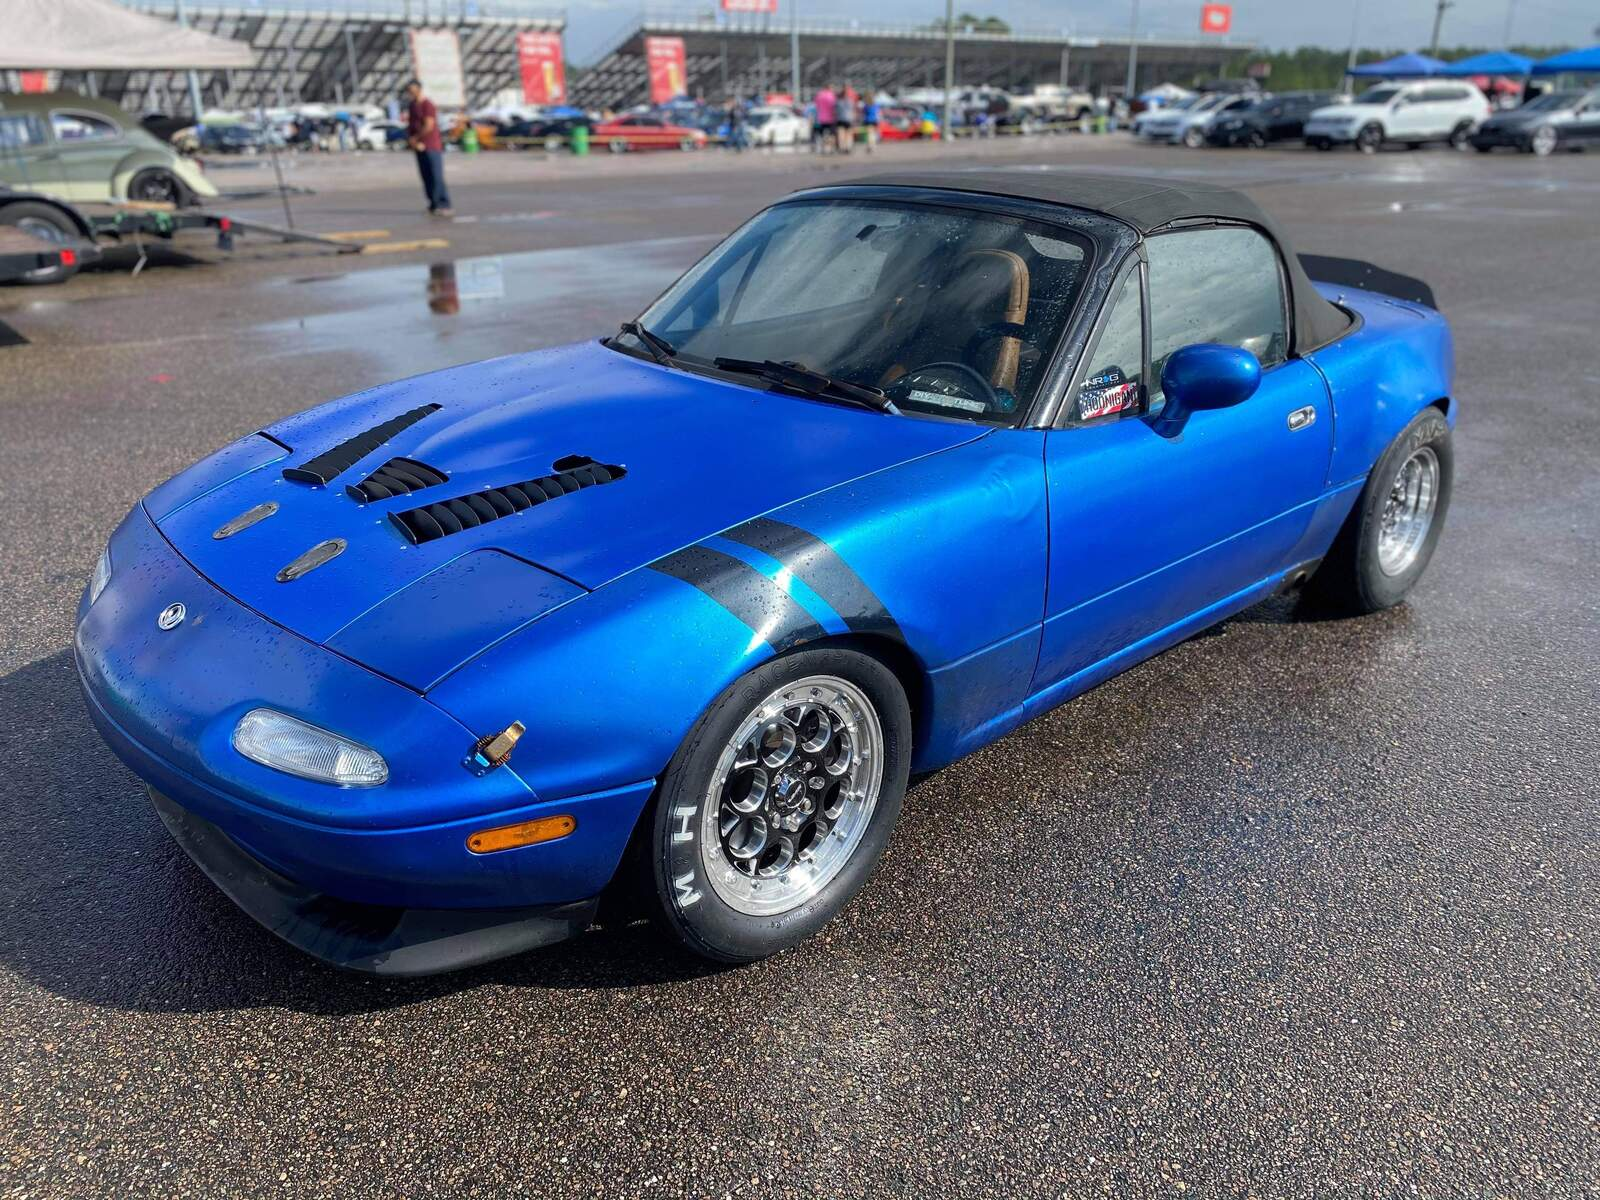 Blue 1997 Mazda Miata MX5 1.8 turbo